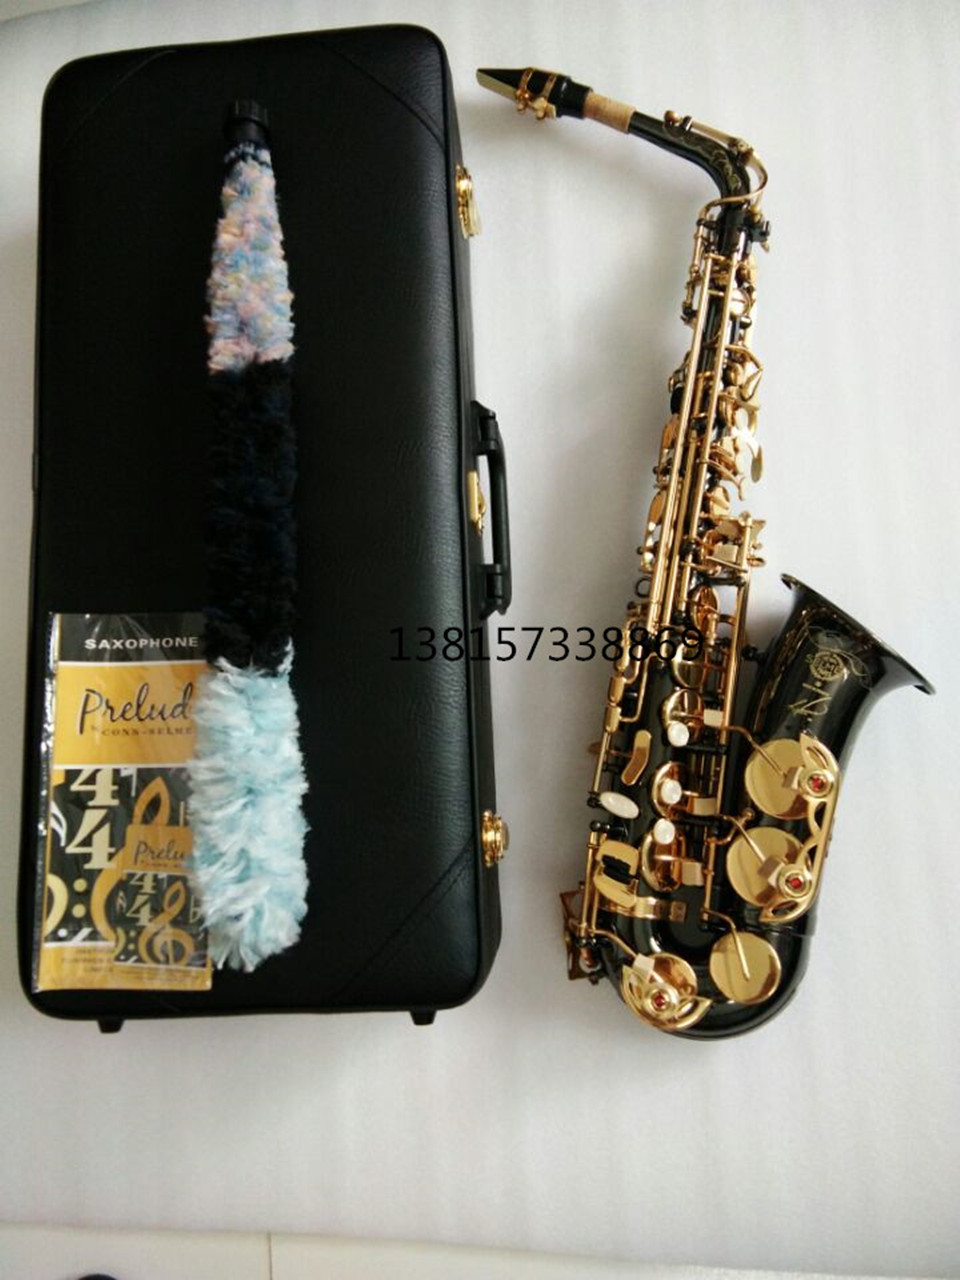 2017 New E Alto Saxophone Selmer 54 Black nickel gold key Lacquer Professional Saxophone Saxophone High Eb Tone with nozzle france selmer 54 e flat alto saxophone instruments matt black nickel and gold professional performance